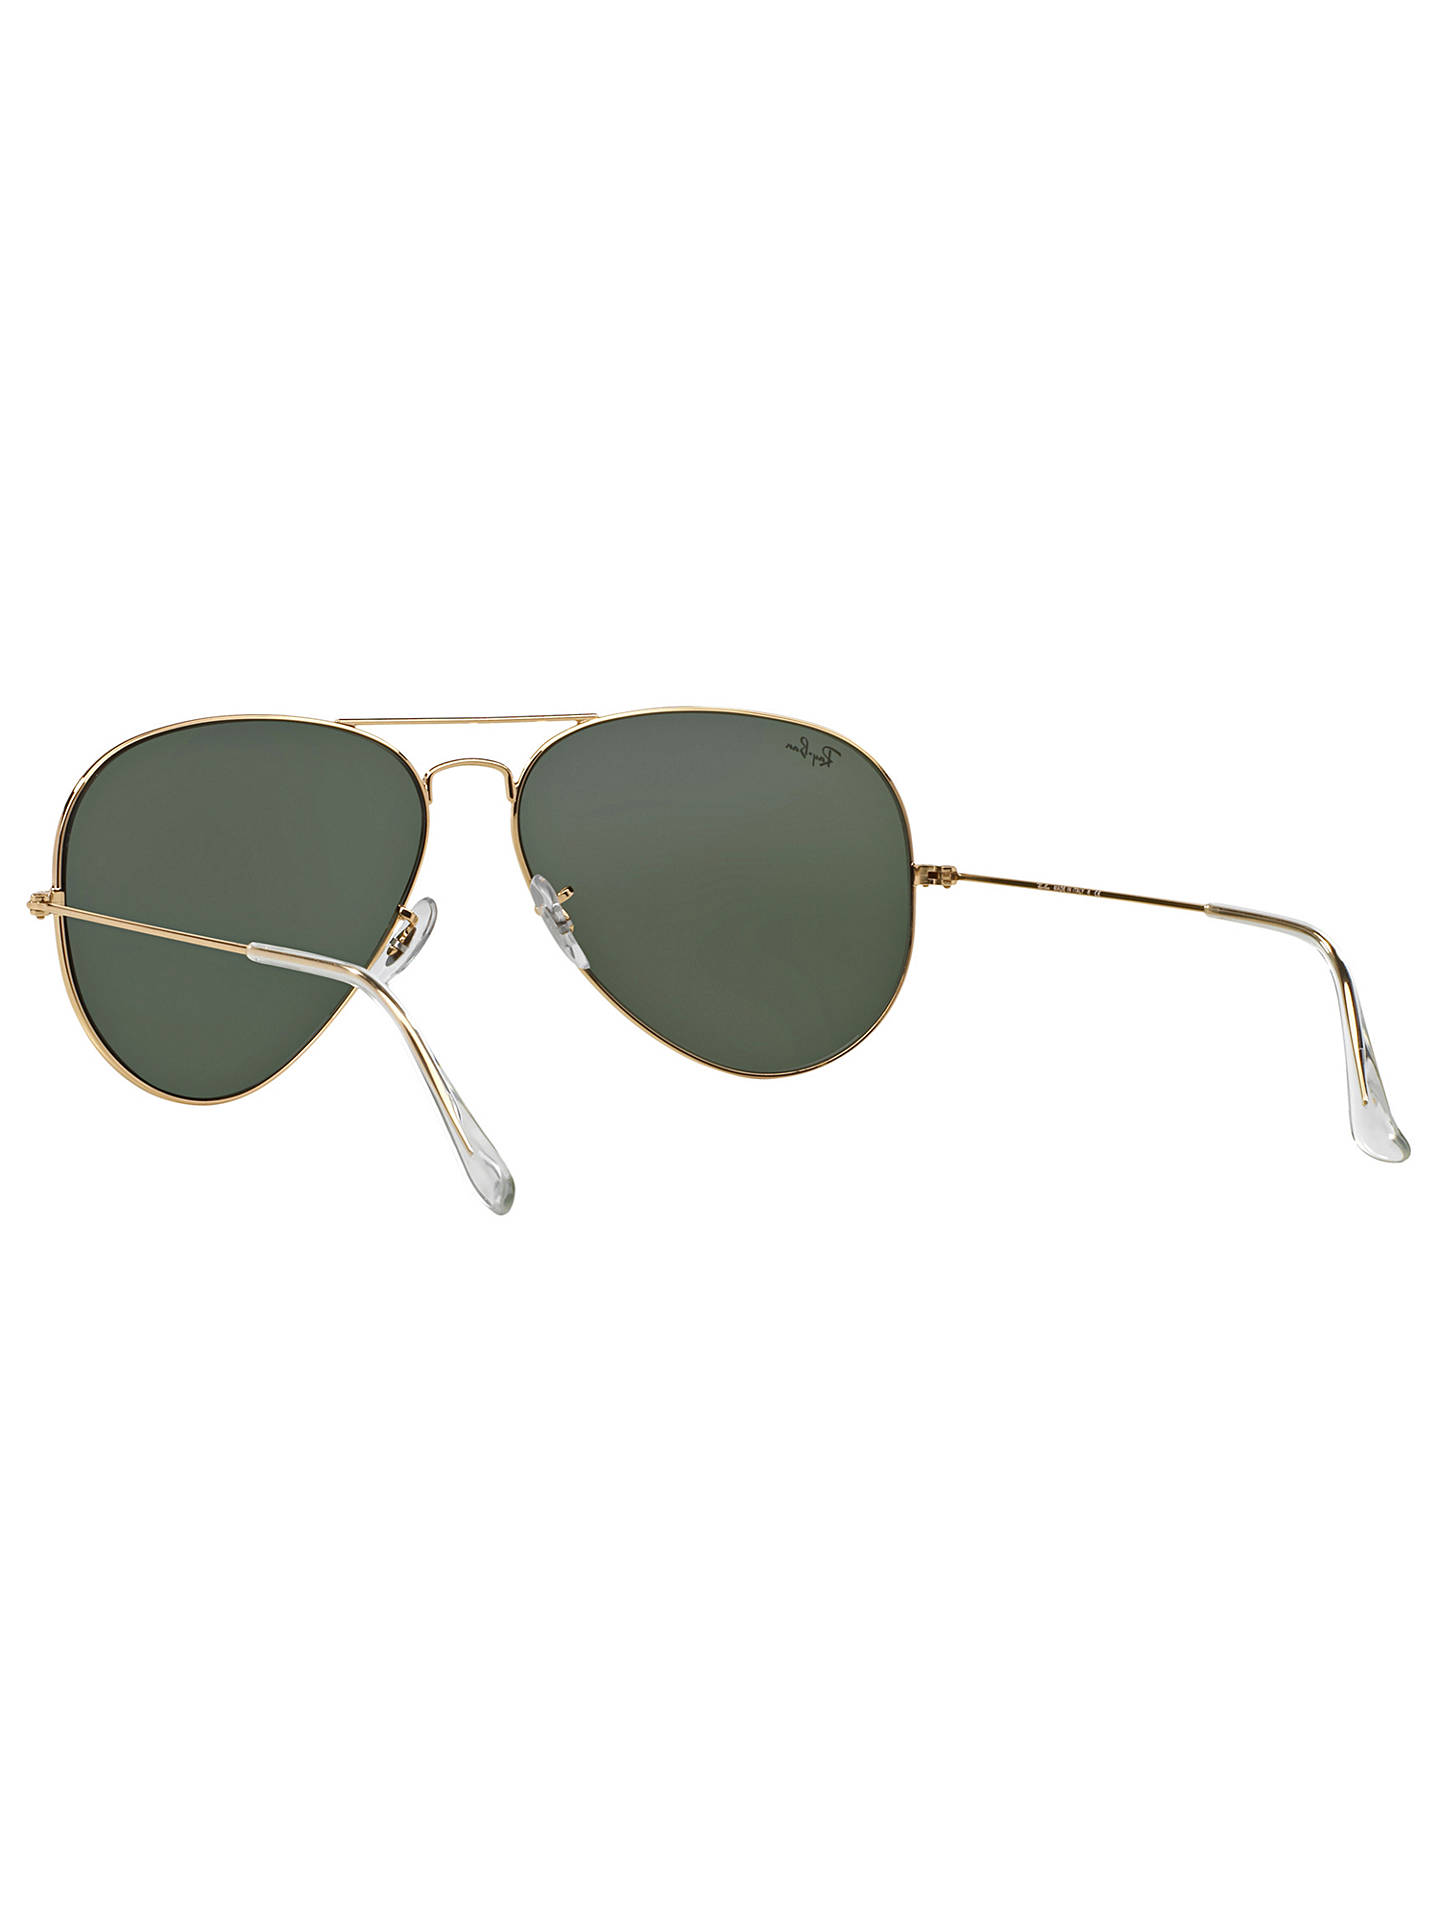 BuyRay-Ban RB3025 Aviator Sunglasses, Gold/Dark Green Online at johnlewis.com